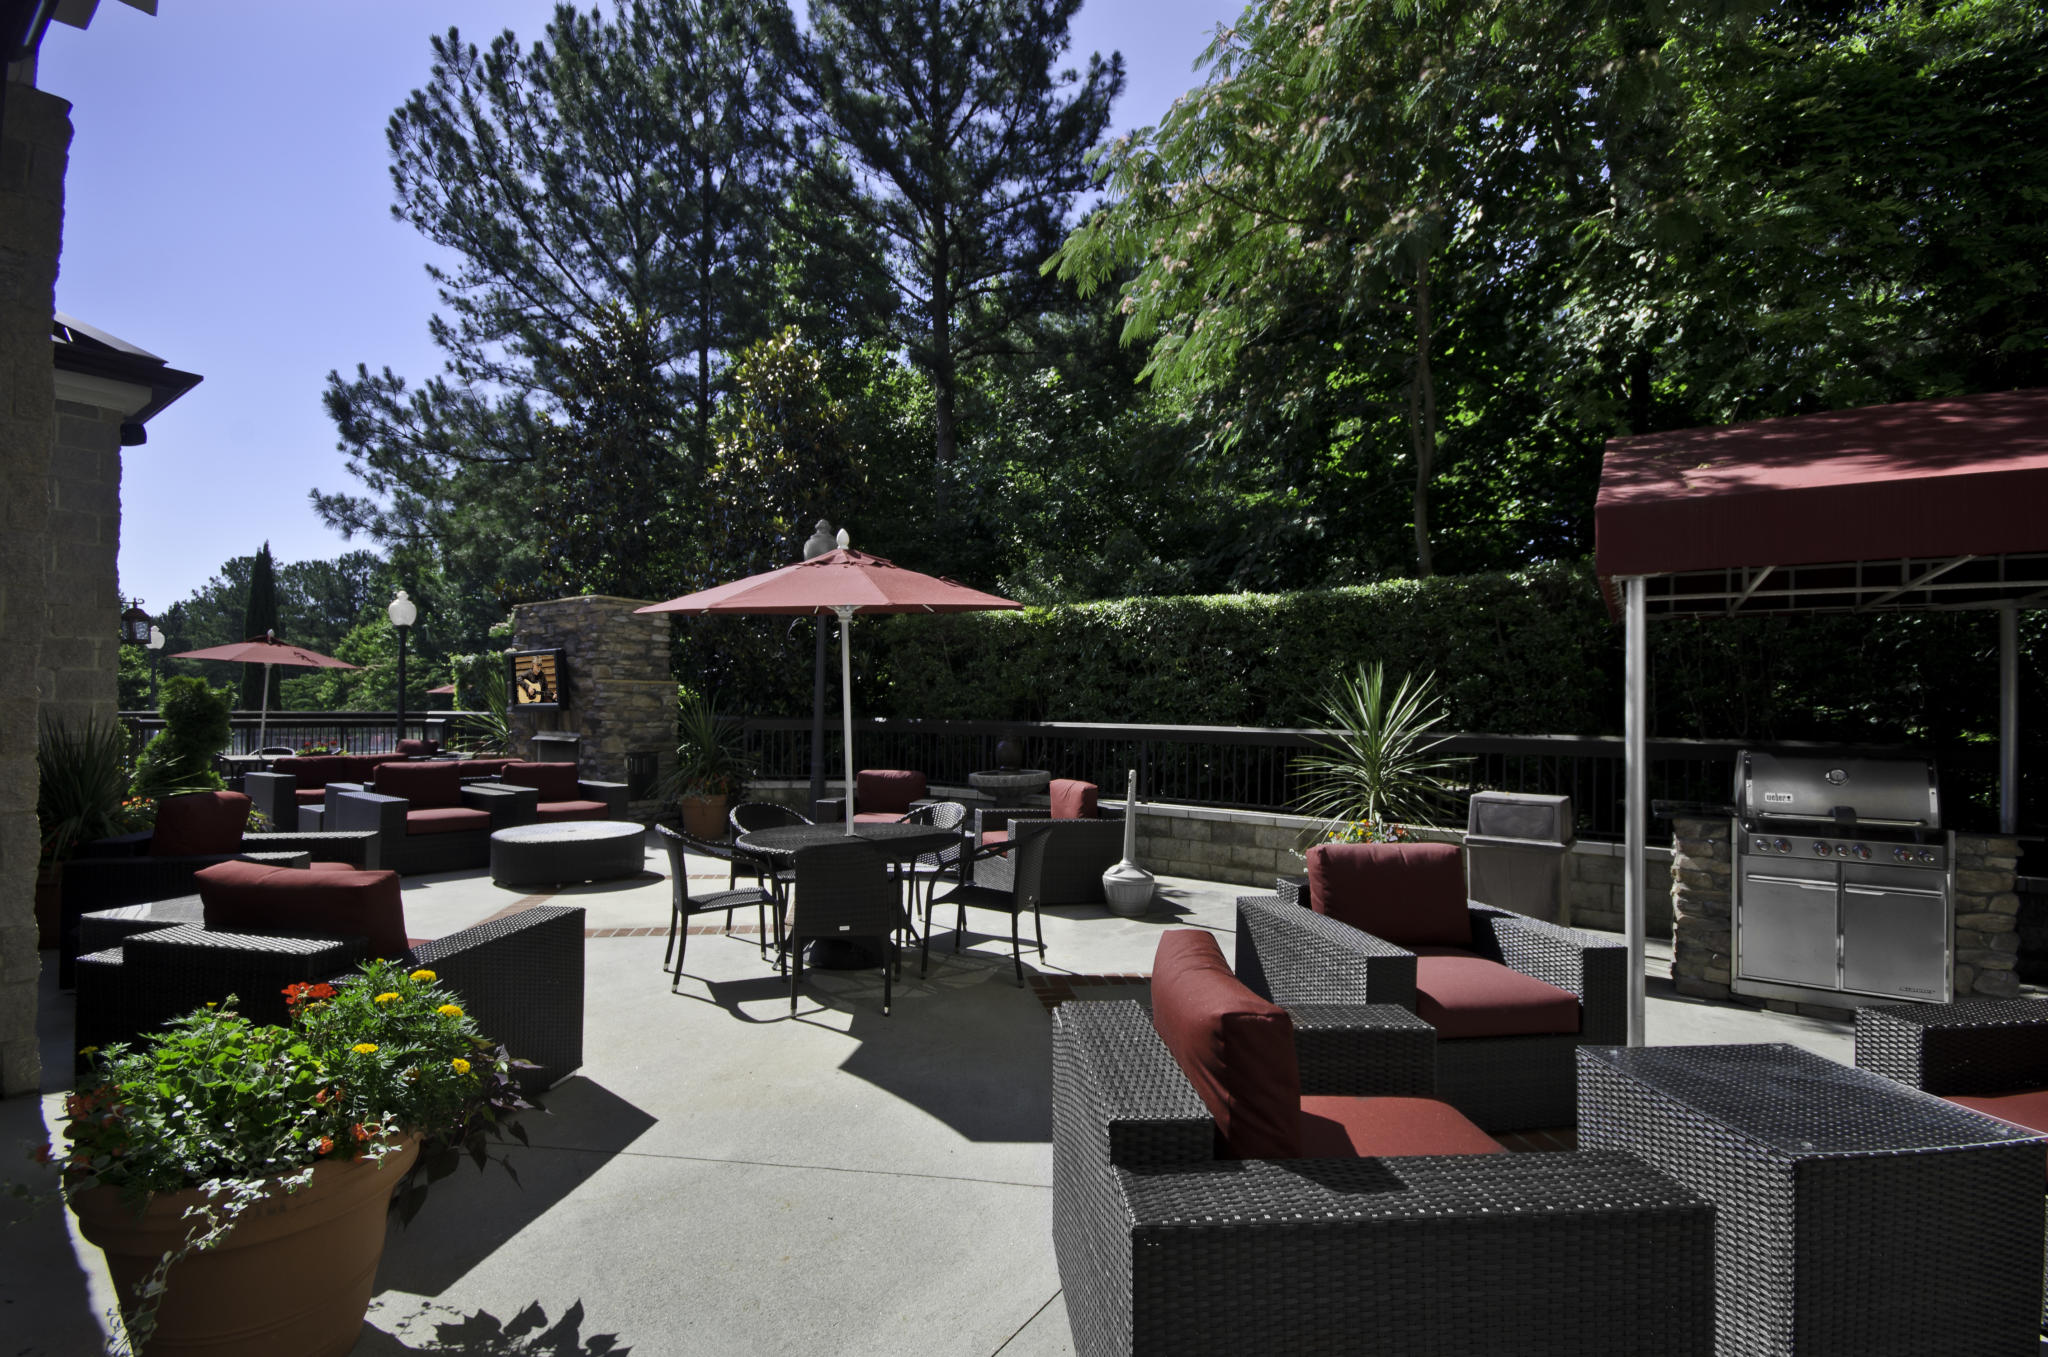 Hampton Inn & Suites Raleigh / Cary NC Outdoor patio